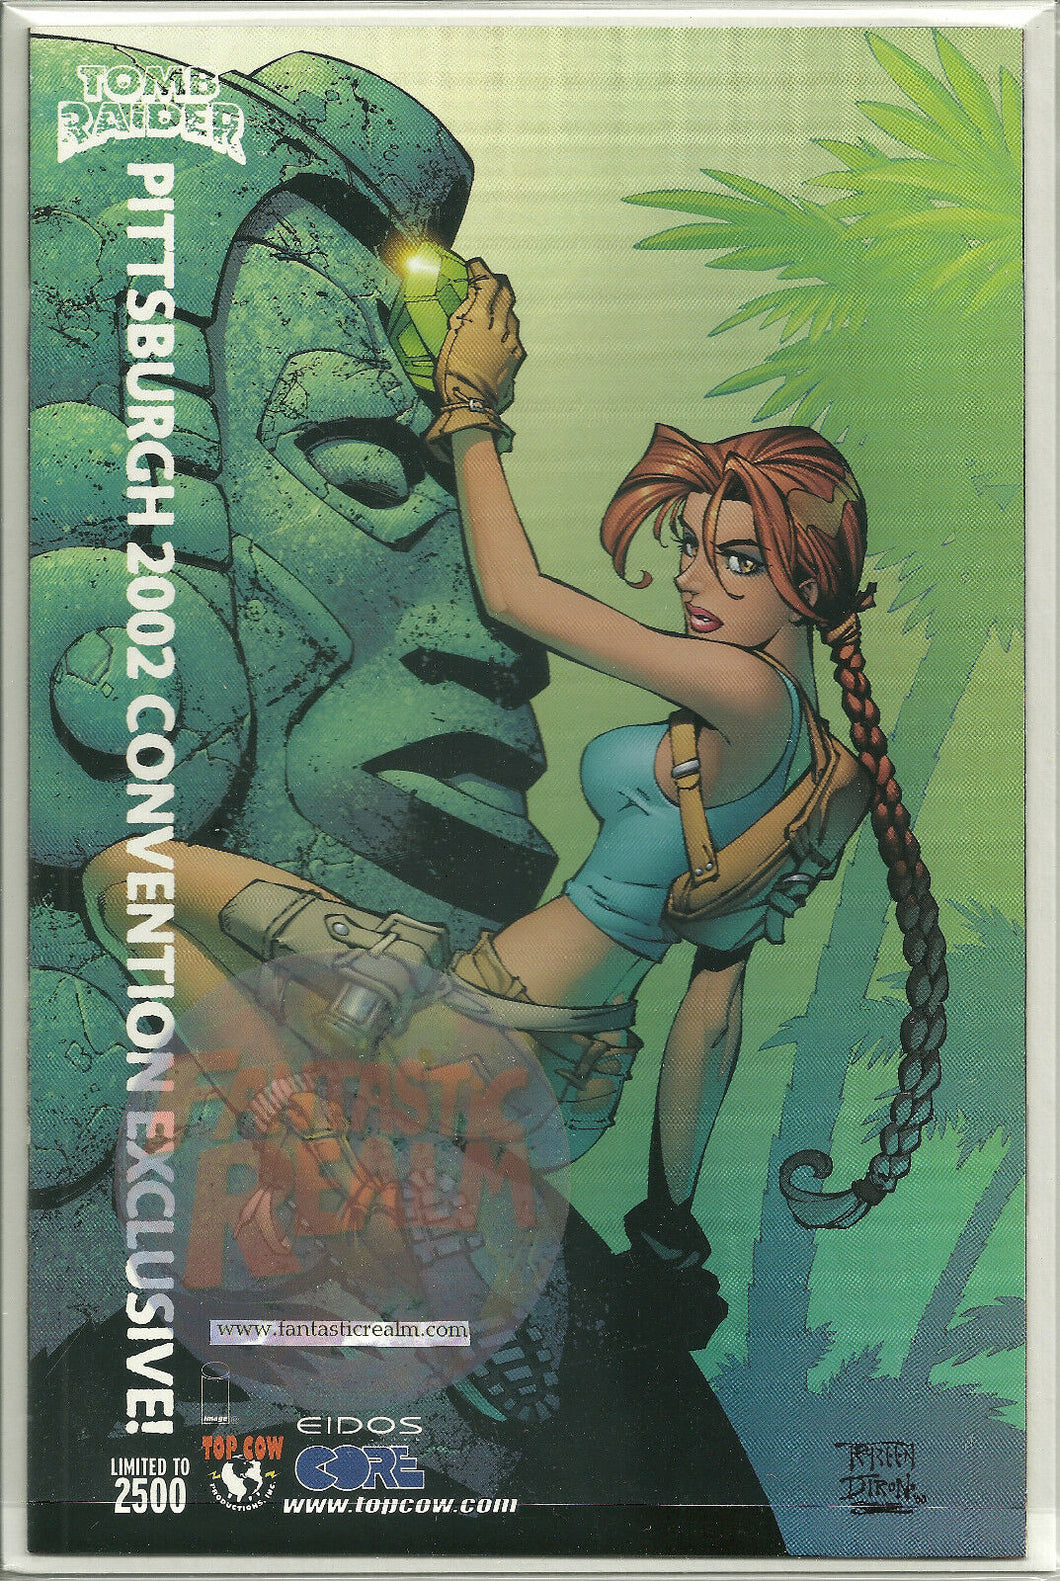 TOMB RAIDER #21 TOP COW RARE PITTSBURGH CONVENTION VARIANT 2002 IMAGE COMICS